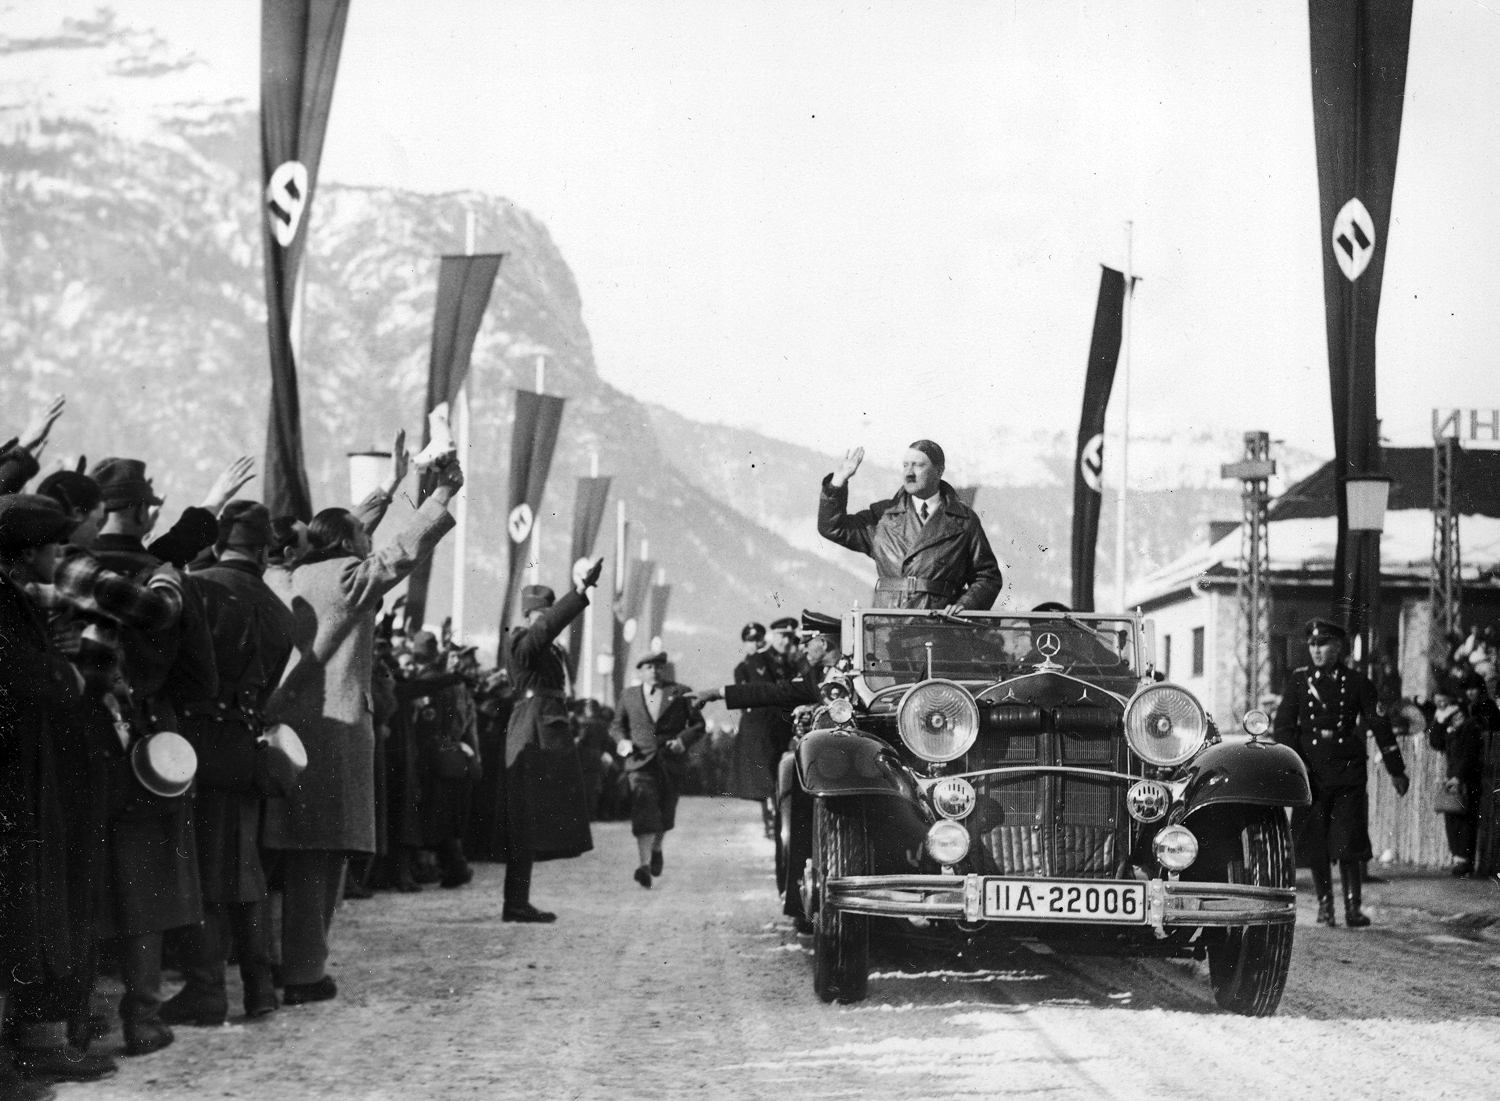 Adolf Hitler arriving at the Garmisch winter Olympic games